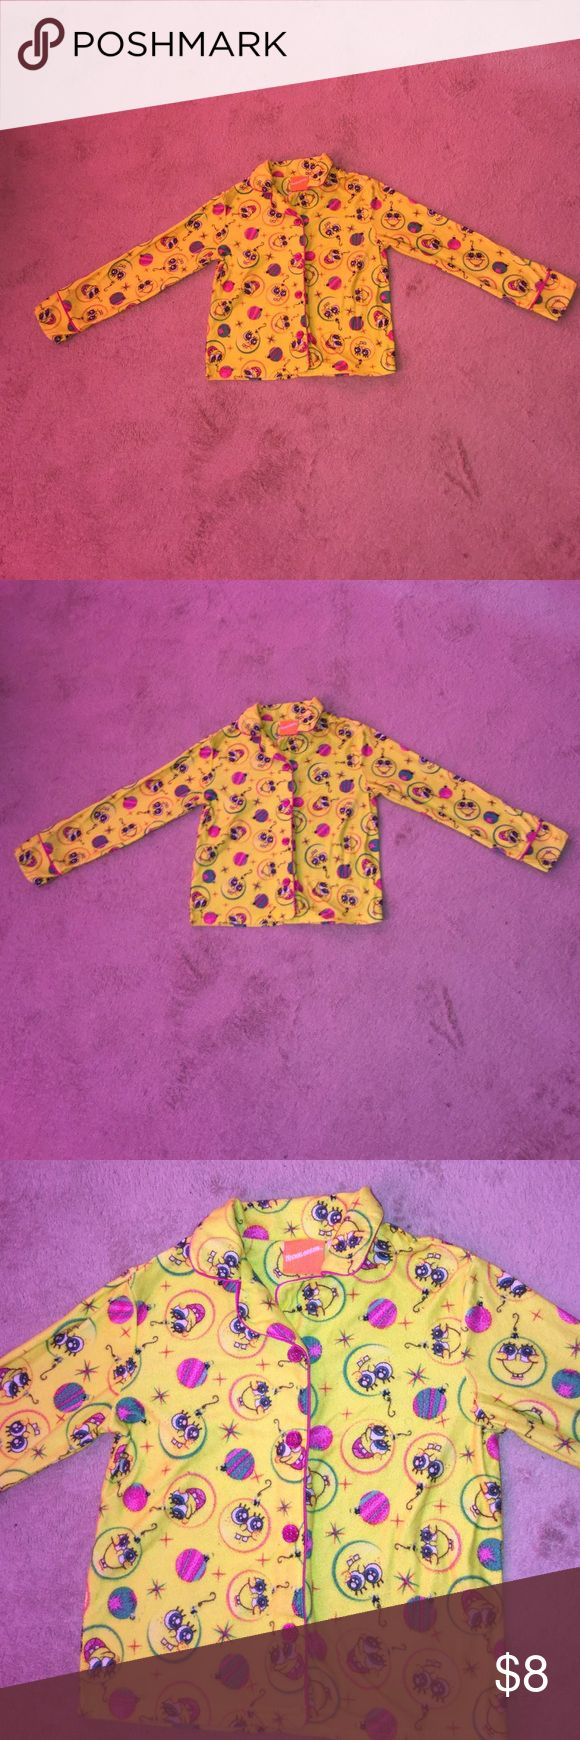 NICKELODEON GIRLS SPONGEBOB PAJAMA TOP..  SIZE 7/8 Good Condition. Same Day Shipping Nickelodeon Pajamas Pajama Tops